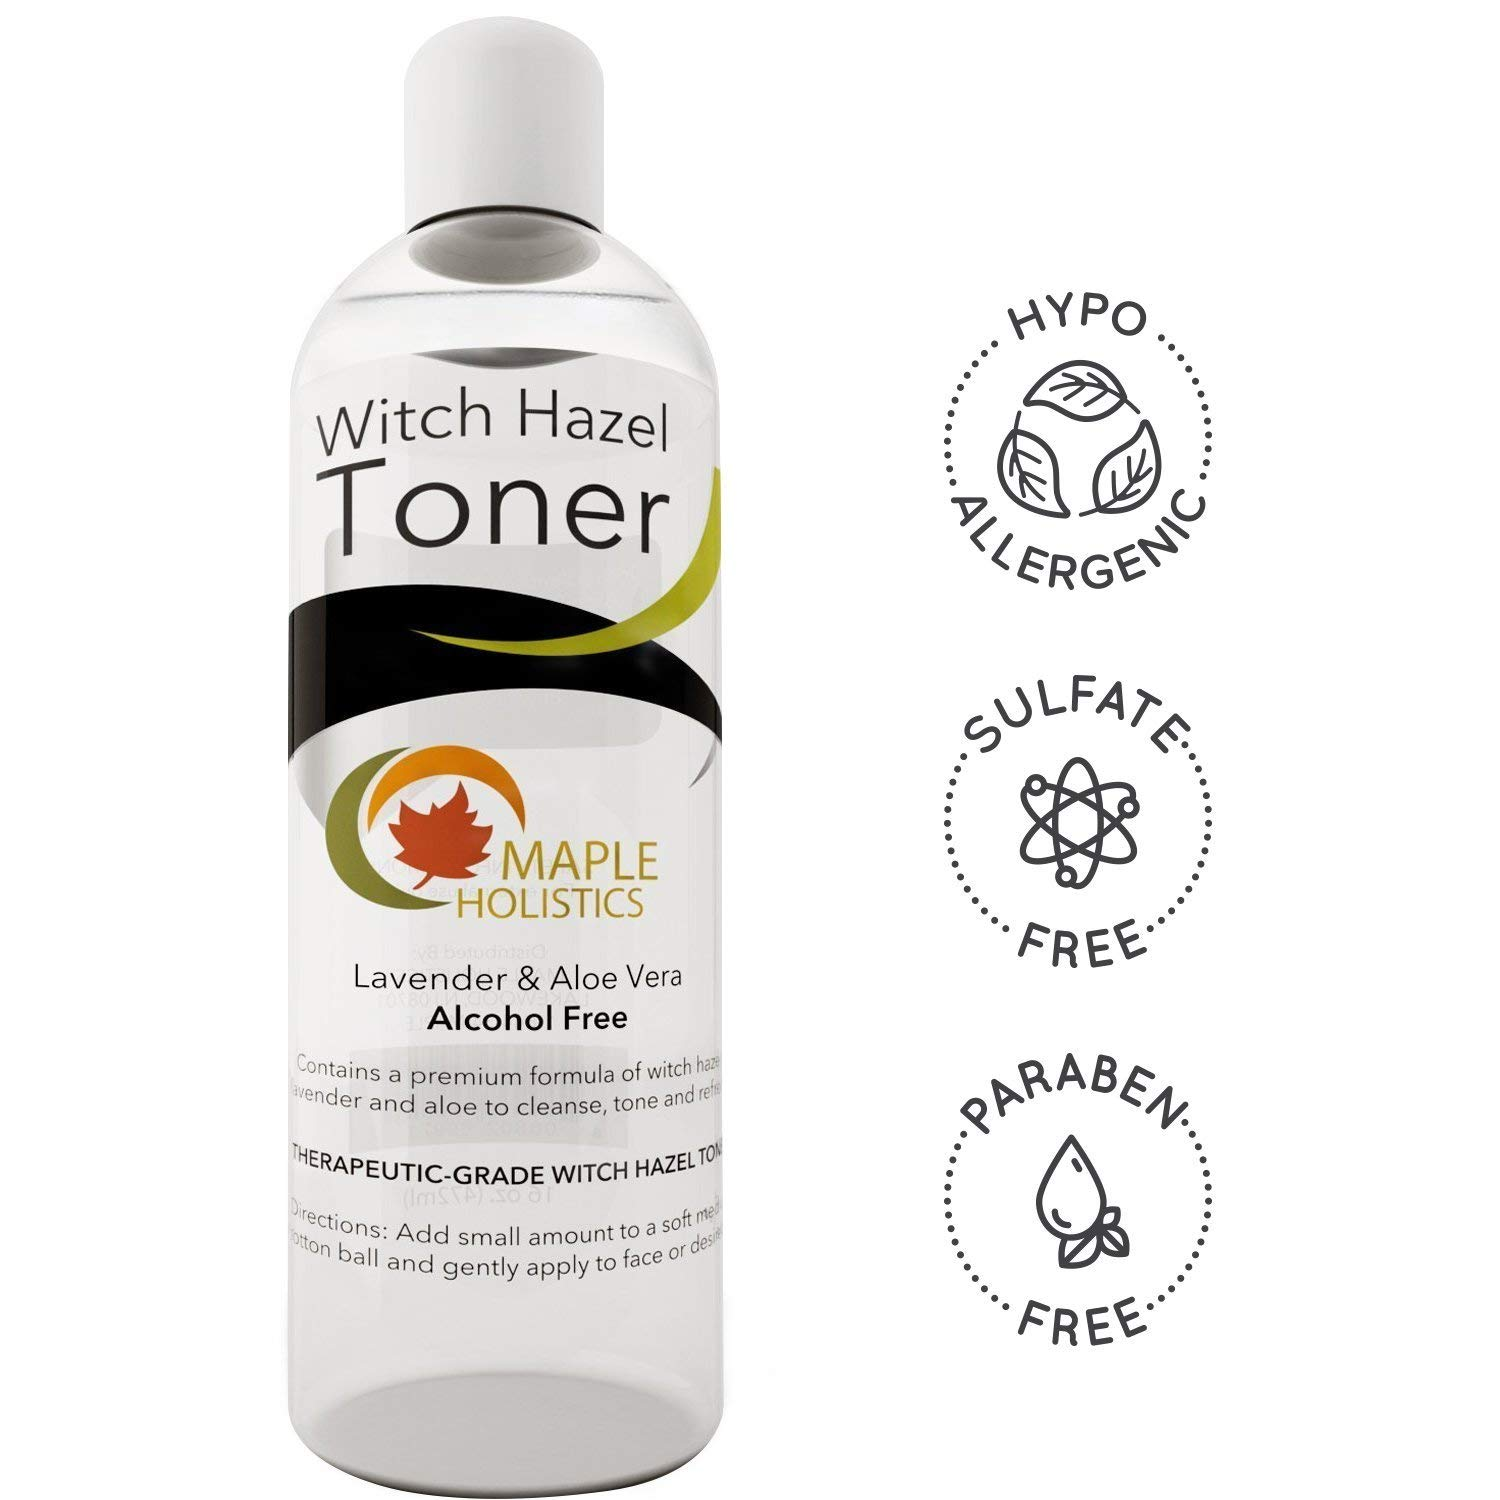 Pure Witch Hazel Toner for Face and Body Alcohol Free Therapeutic With Aloe Vera and Lavender Essential Oil Anti-Aging Natural Skin Care for Women and Men Deep Clean to Minimize Pores For Smooth Skin